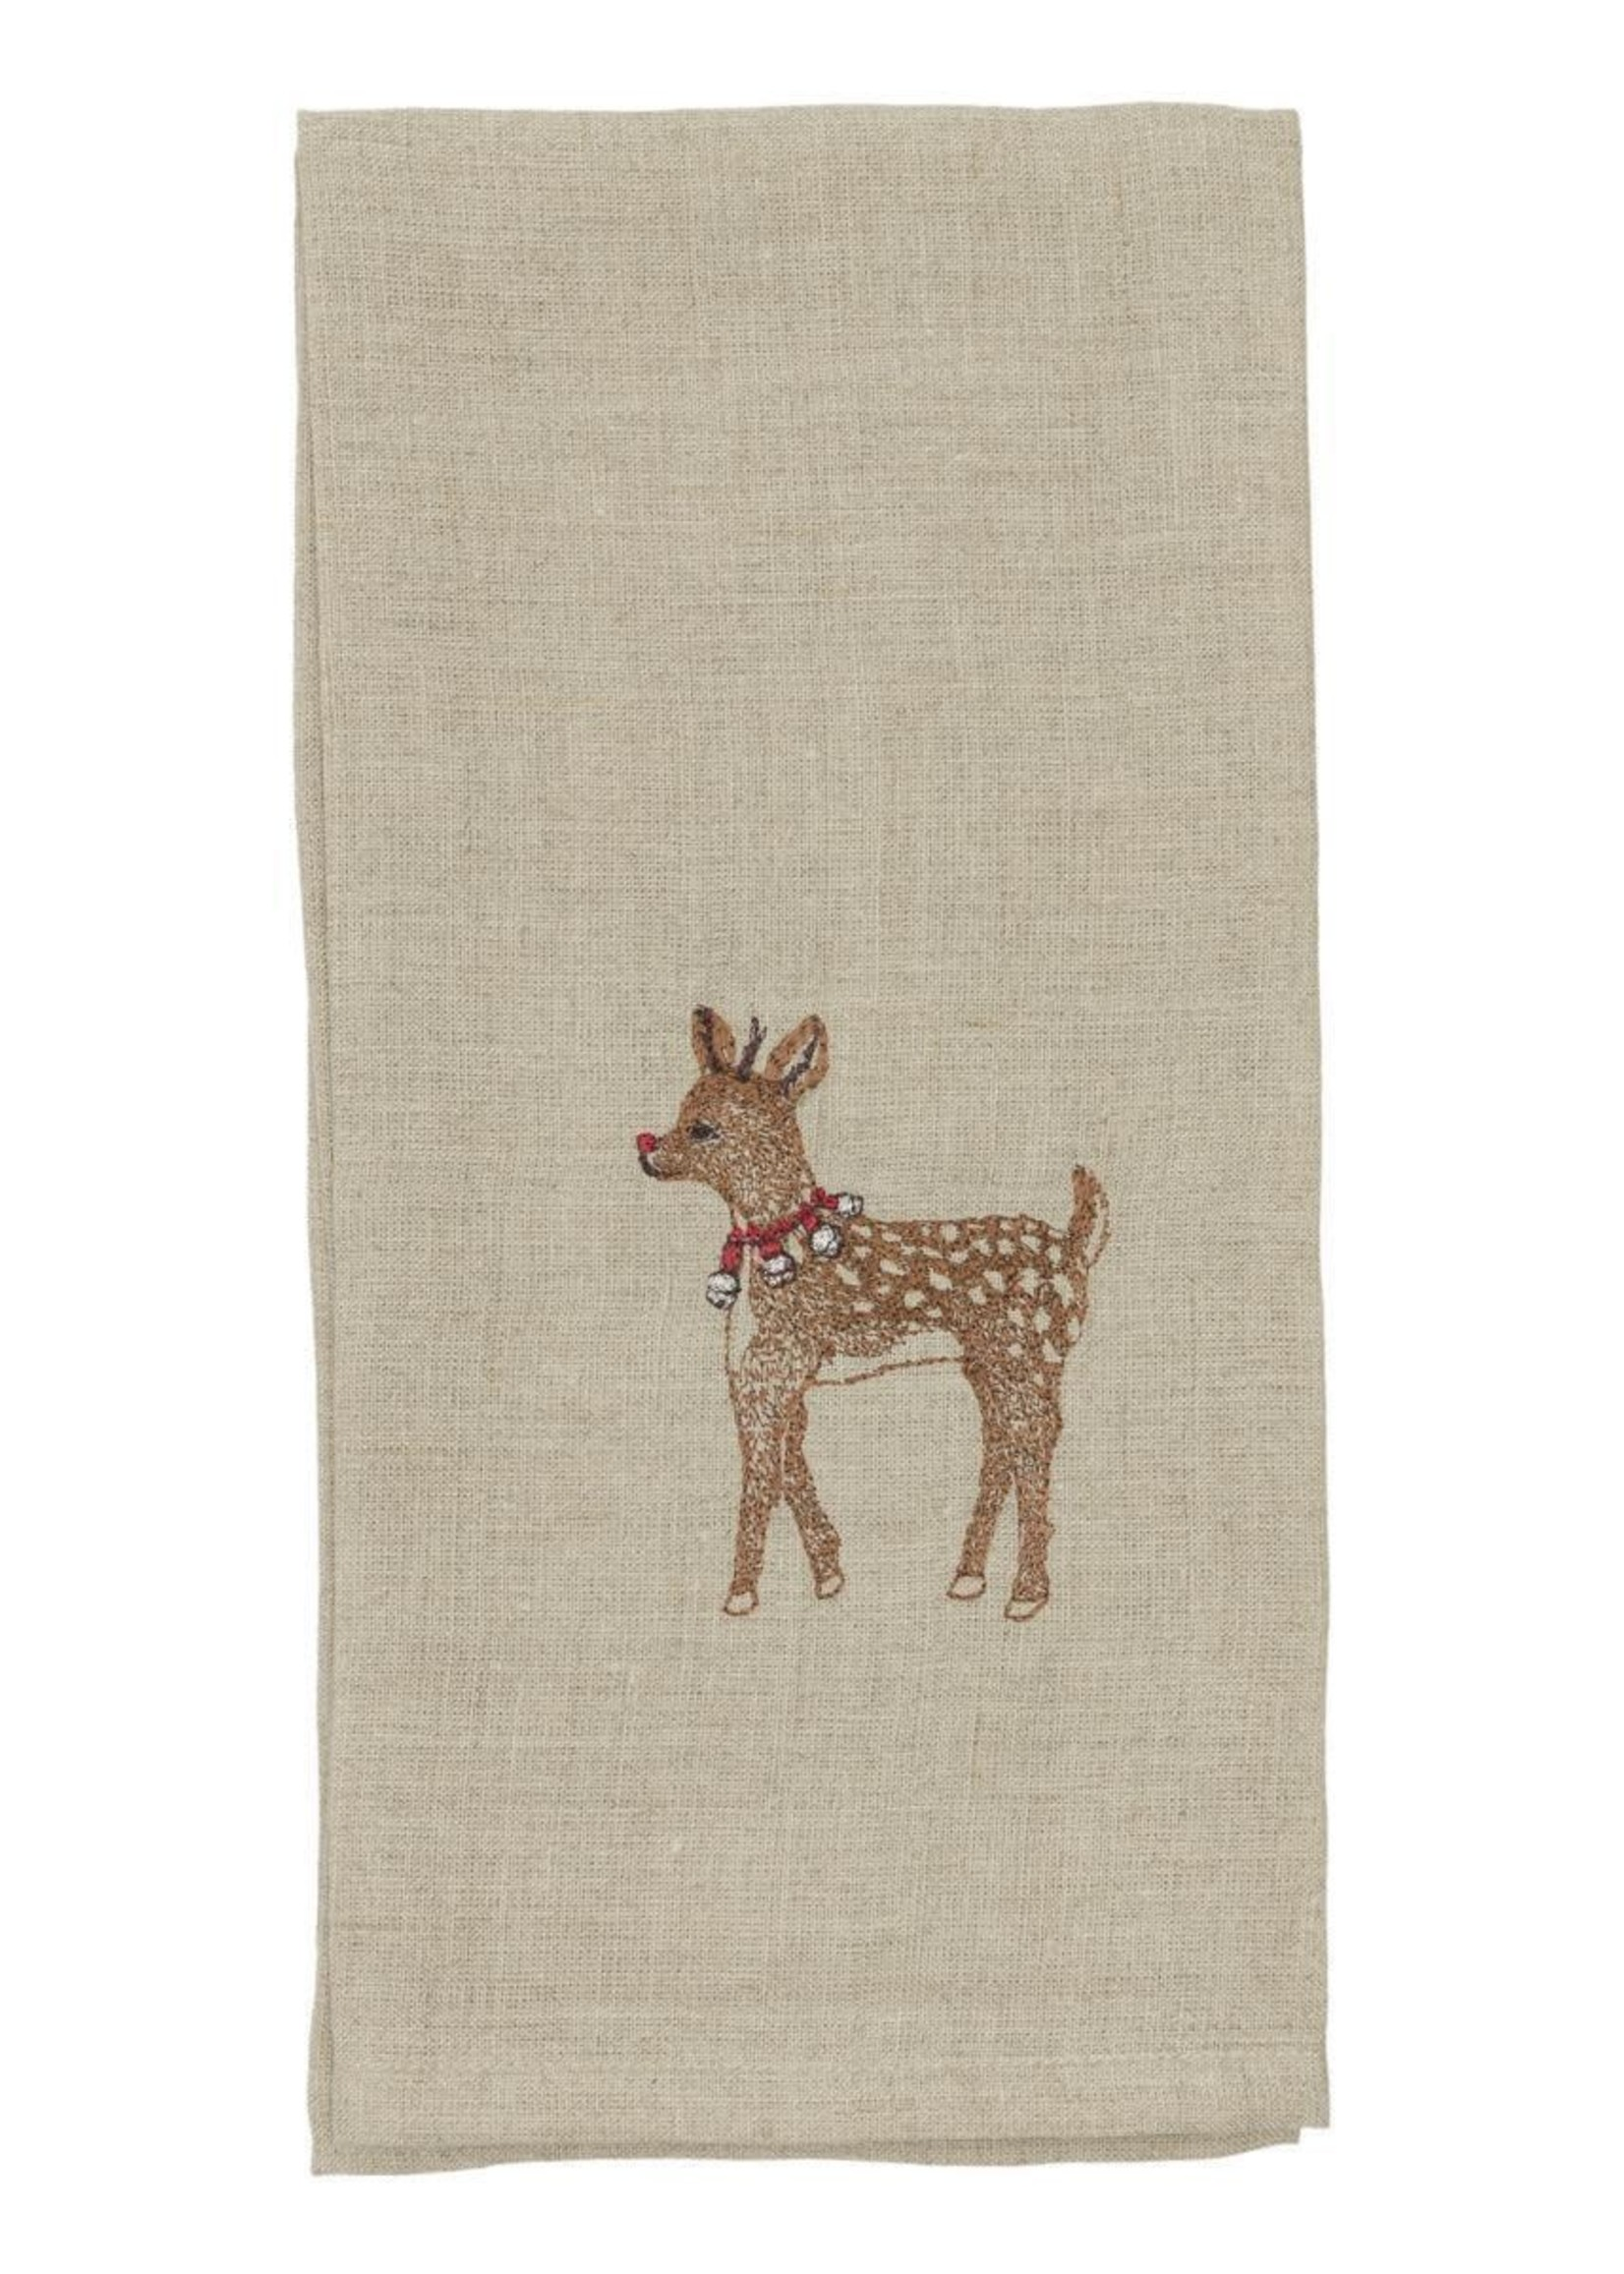 Coral and Tusk Towel - Rudolph